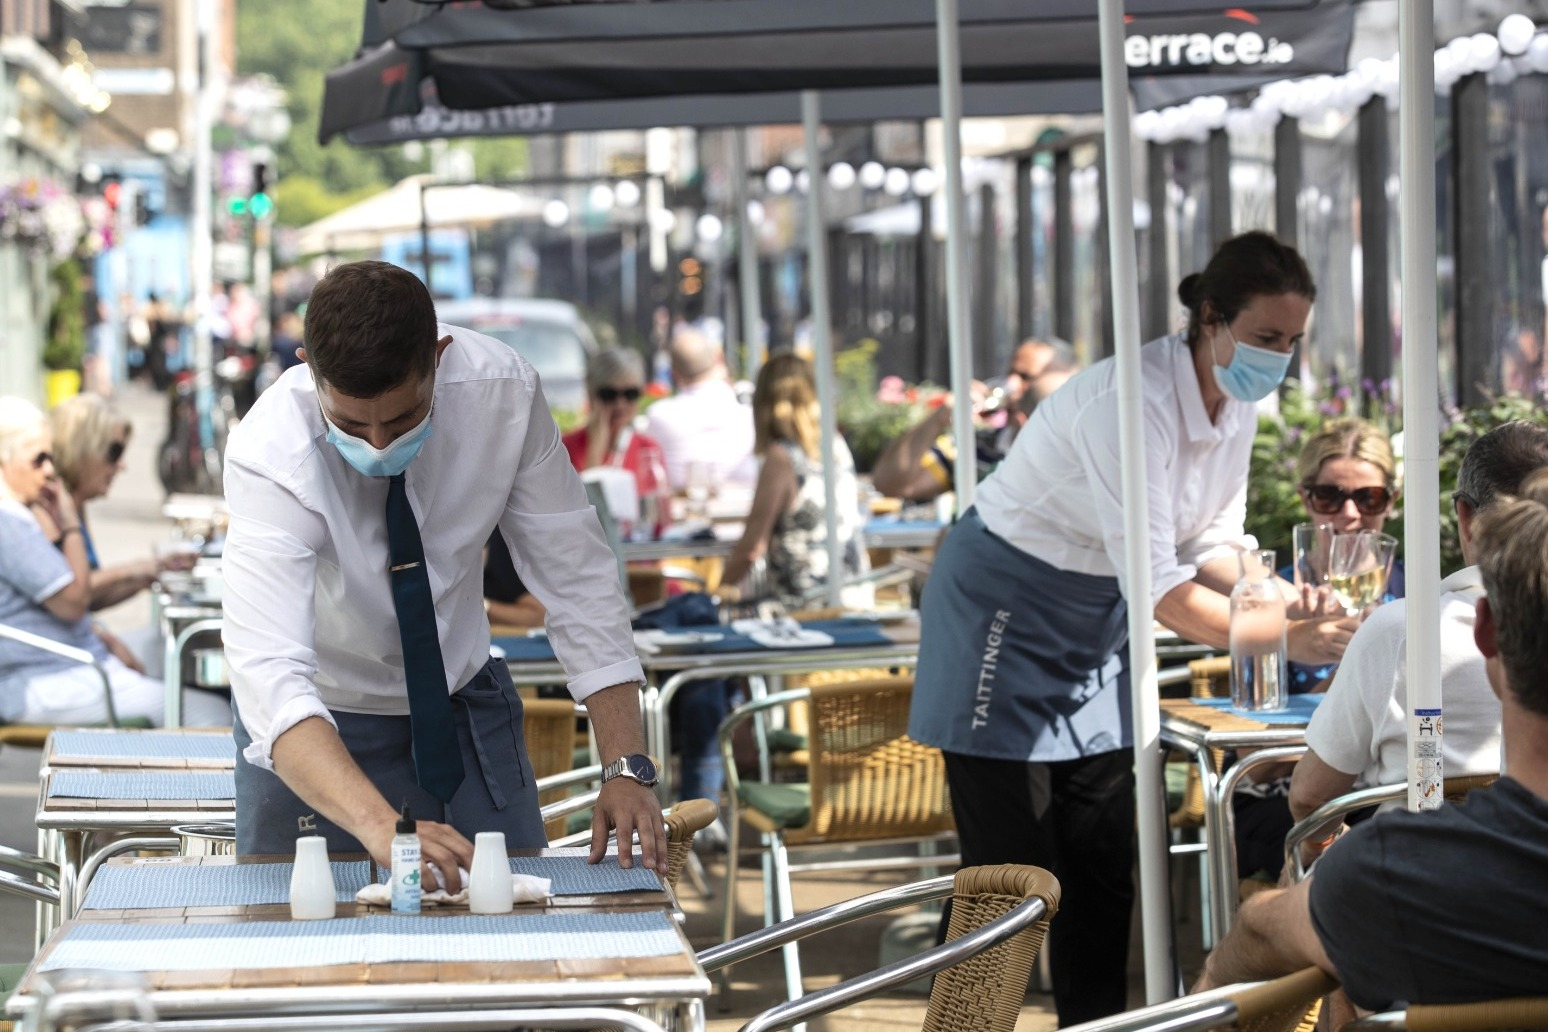 Three quarters of hospitality firms hiking wages amid staff shortages – survey